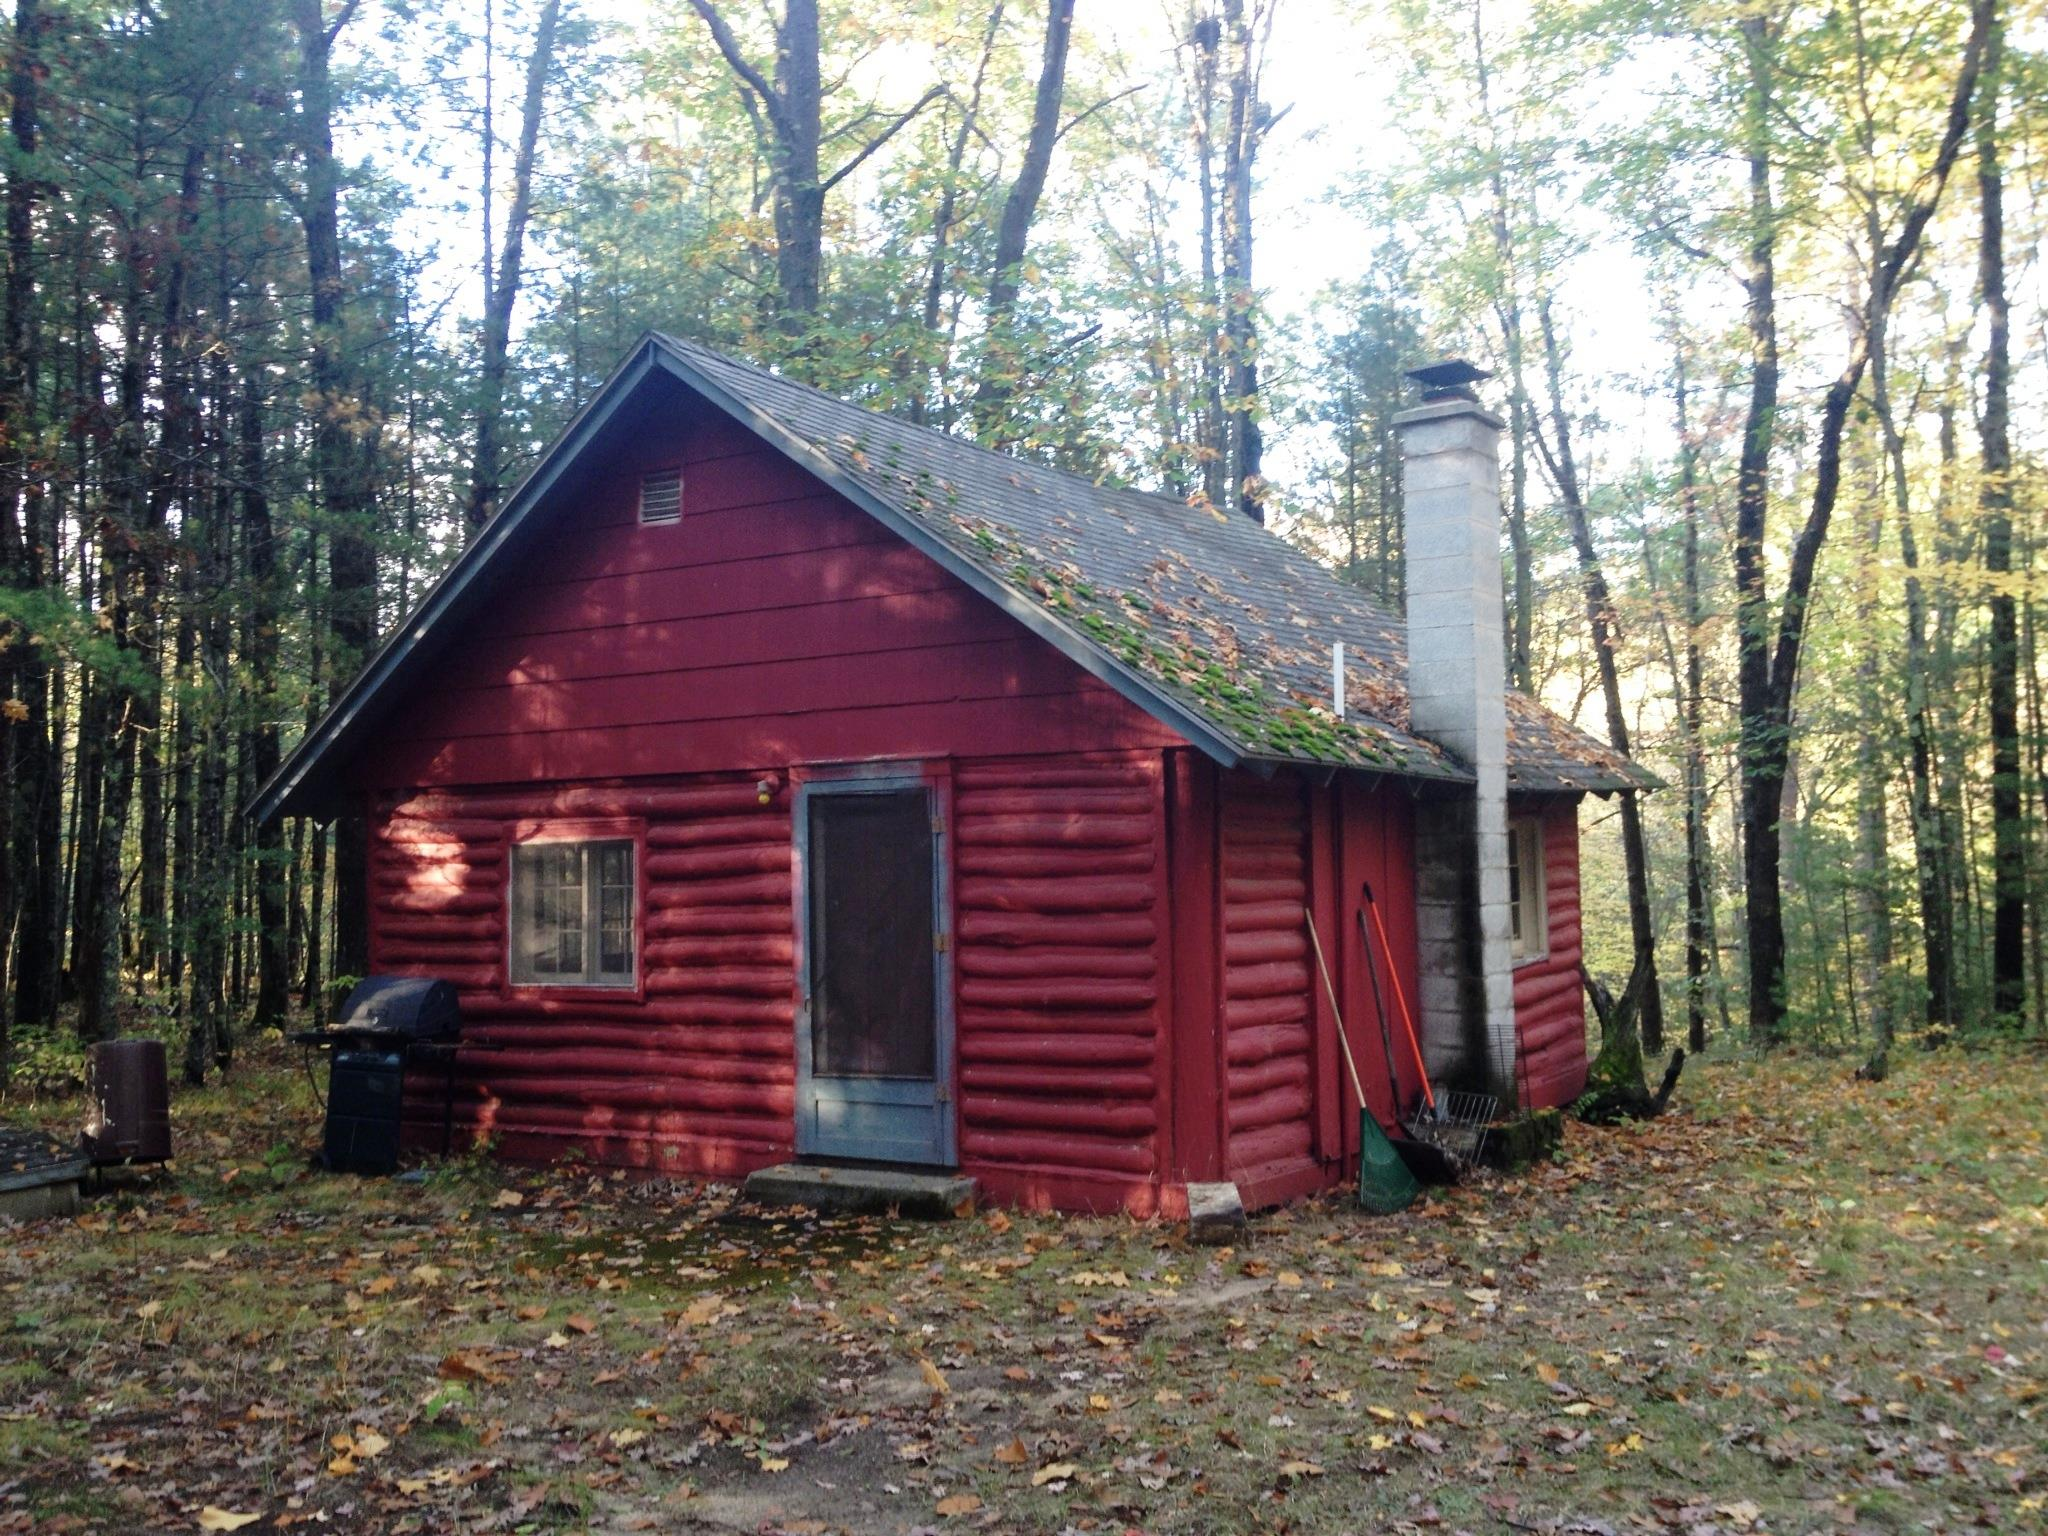 Hunting cabin on Pine Creek Salmon fishing near Wellston